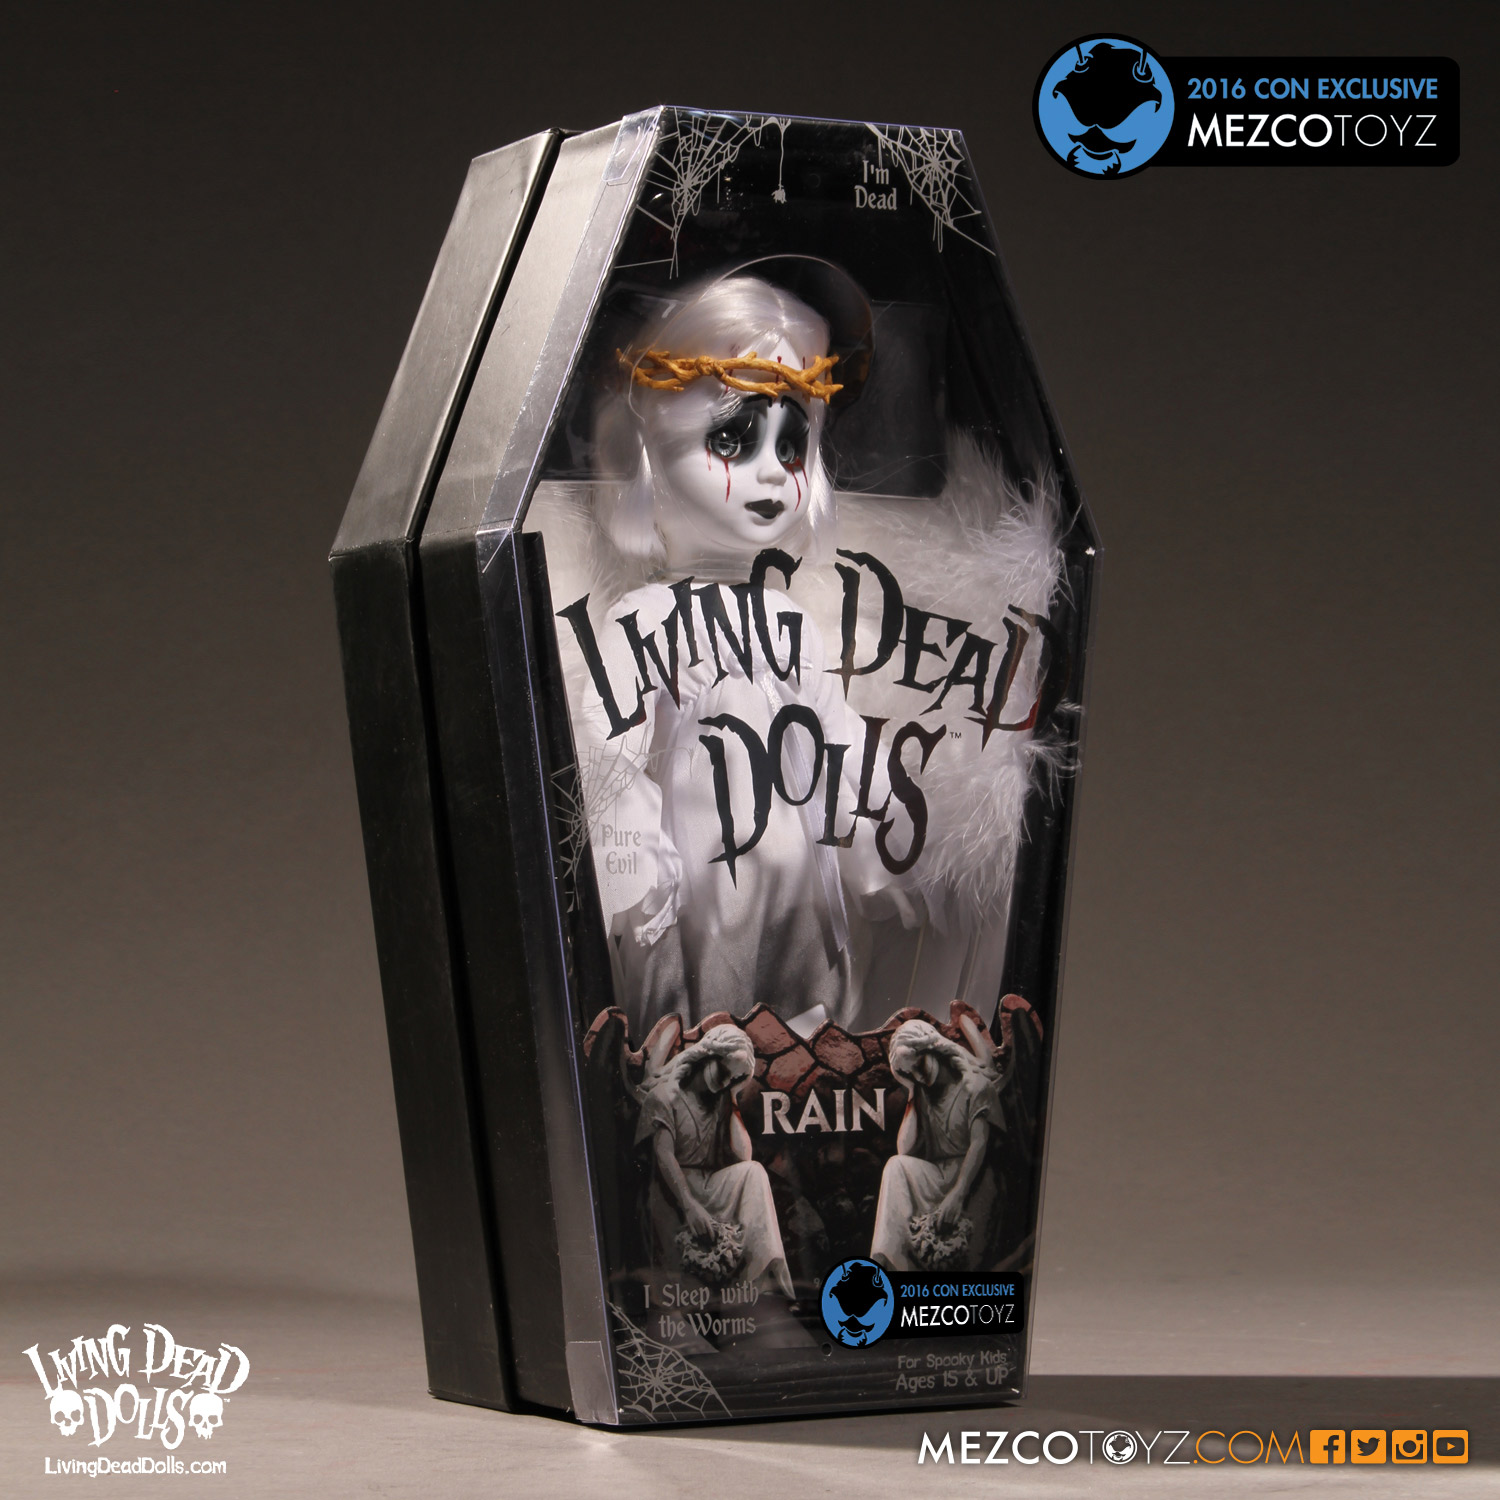 2016 Mezco Toyz Con Exclusives First Look: LDD Rain Packaging